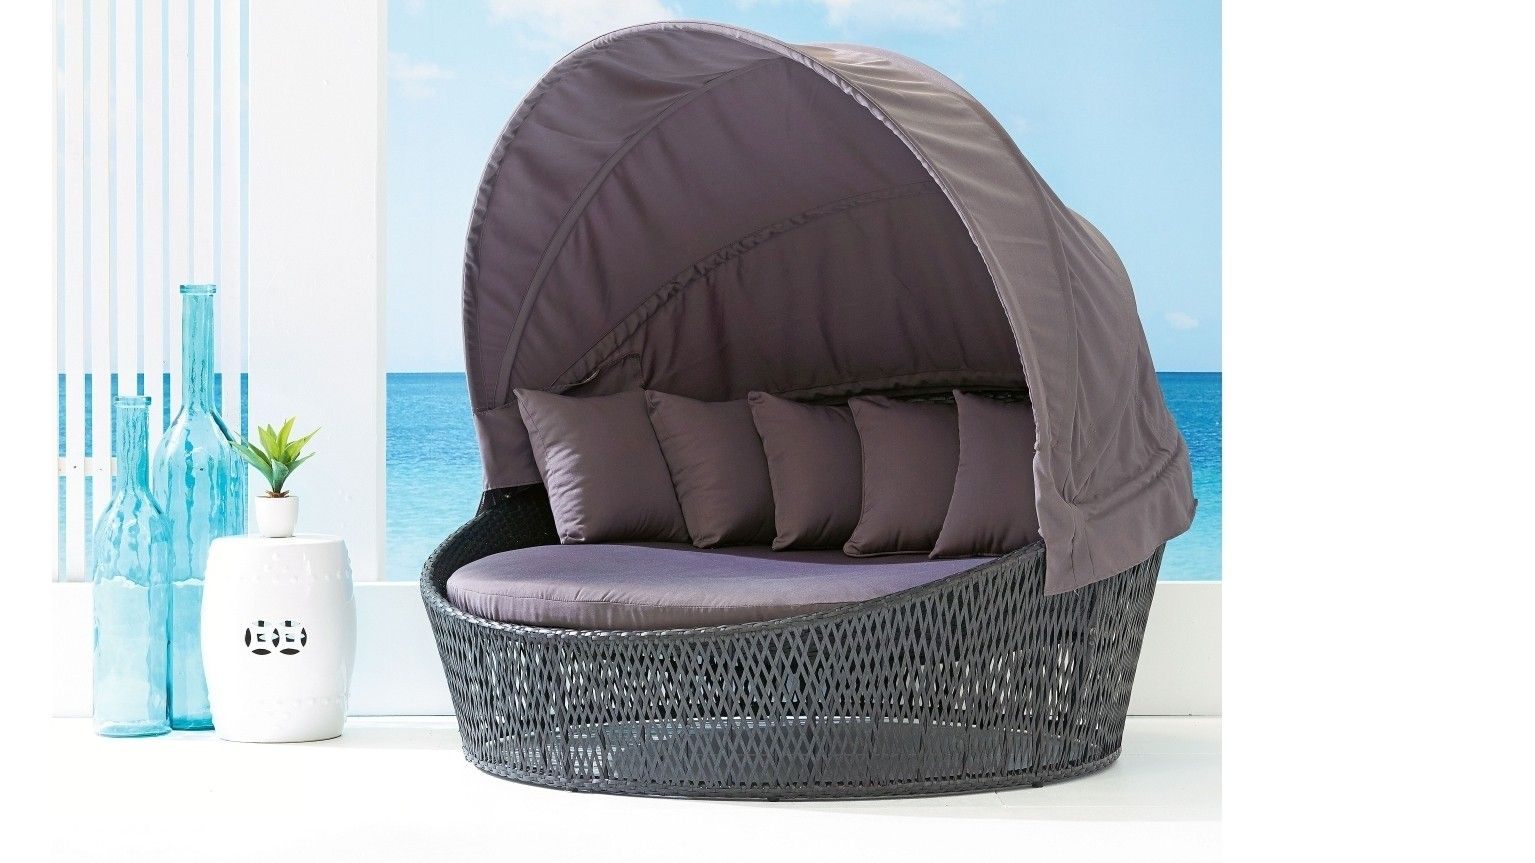 Whether You Like To Relax In The Sun Or In The Shade The San Remo Daybed  Has You Covered With The Retractable Hood And Gorgeous Curved Frame That  You Will ...